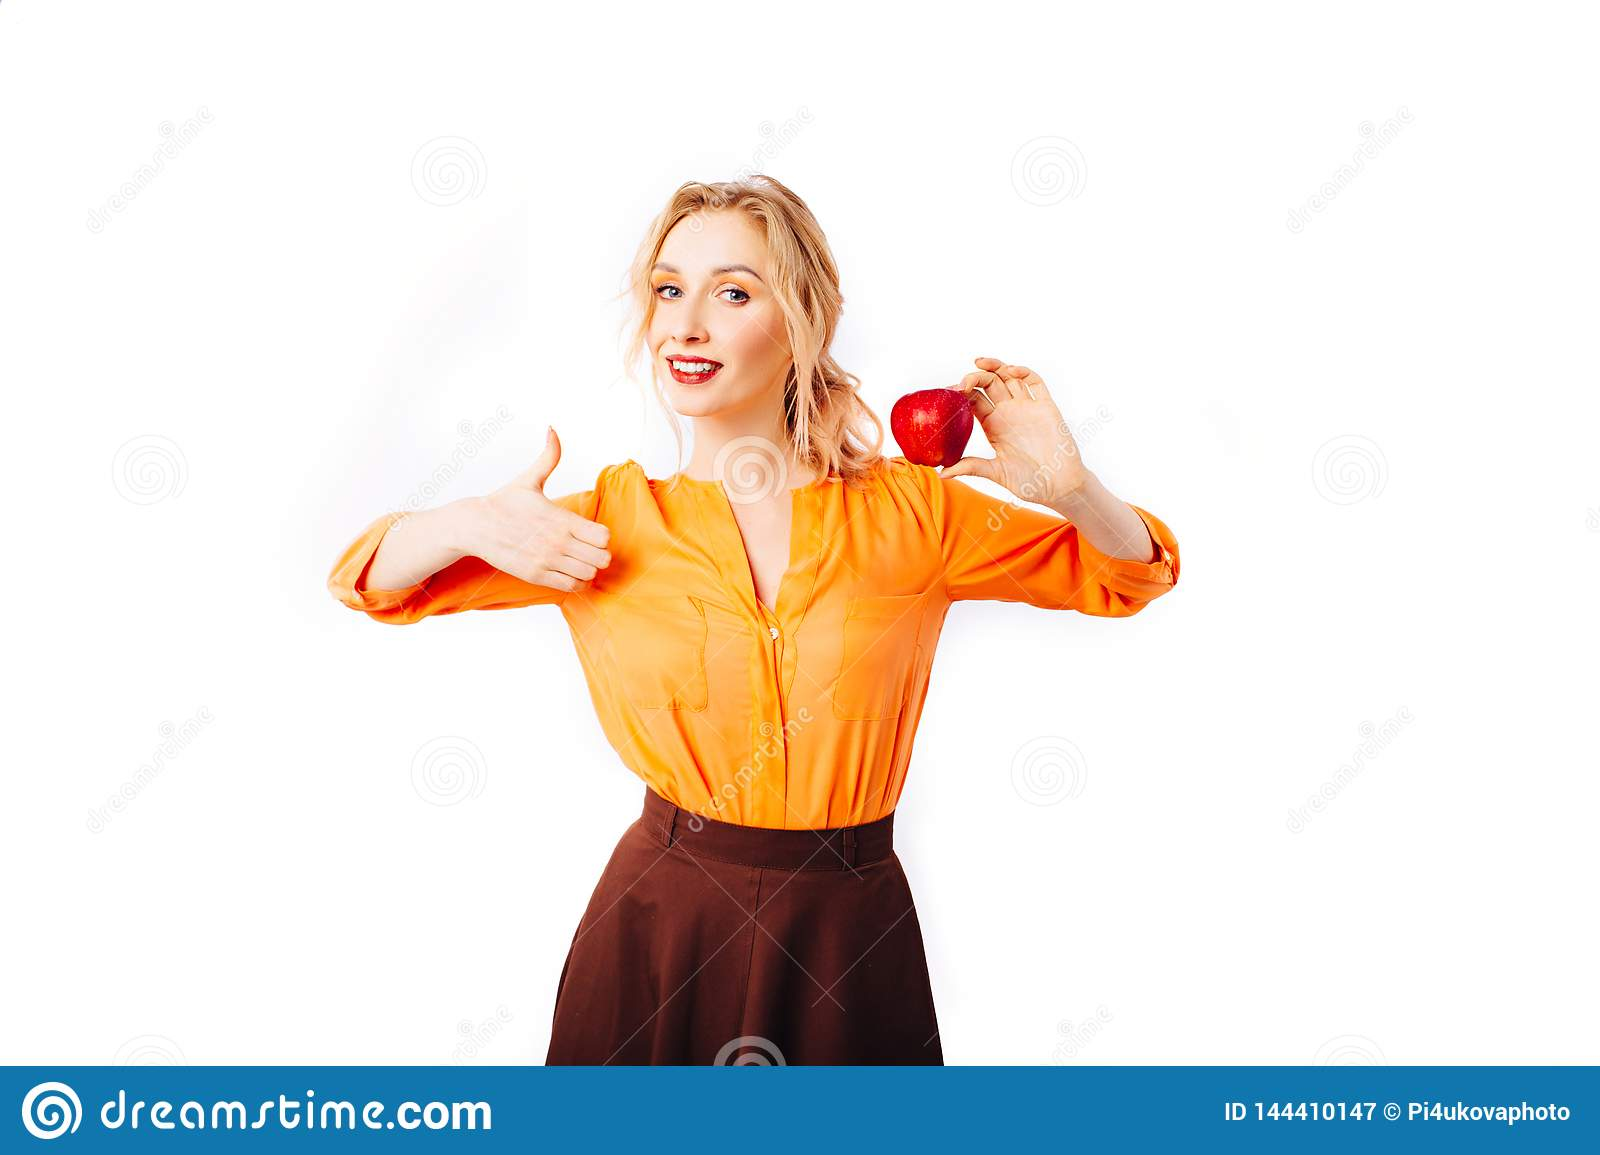 Girl blonde in a bright orange sweater with an apple in her hands promotes healthy food.